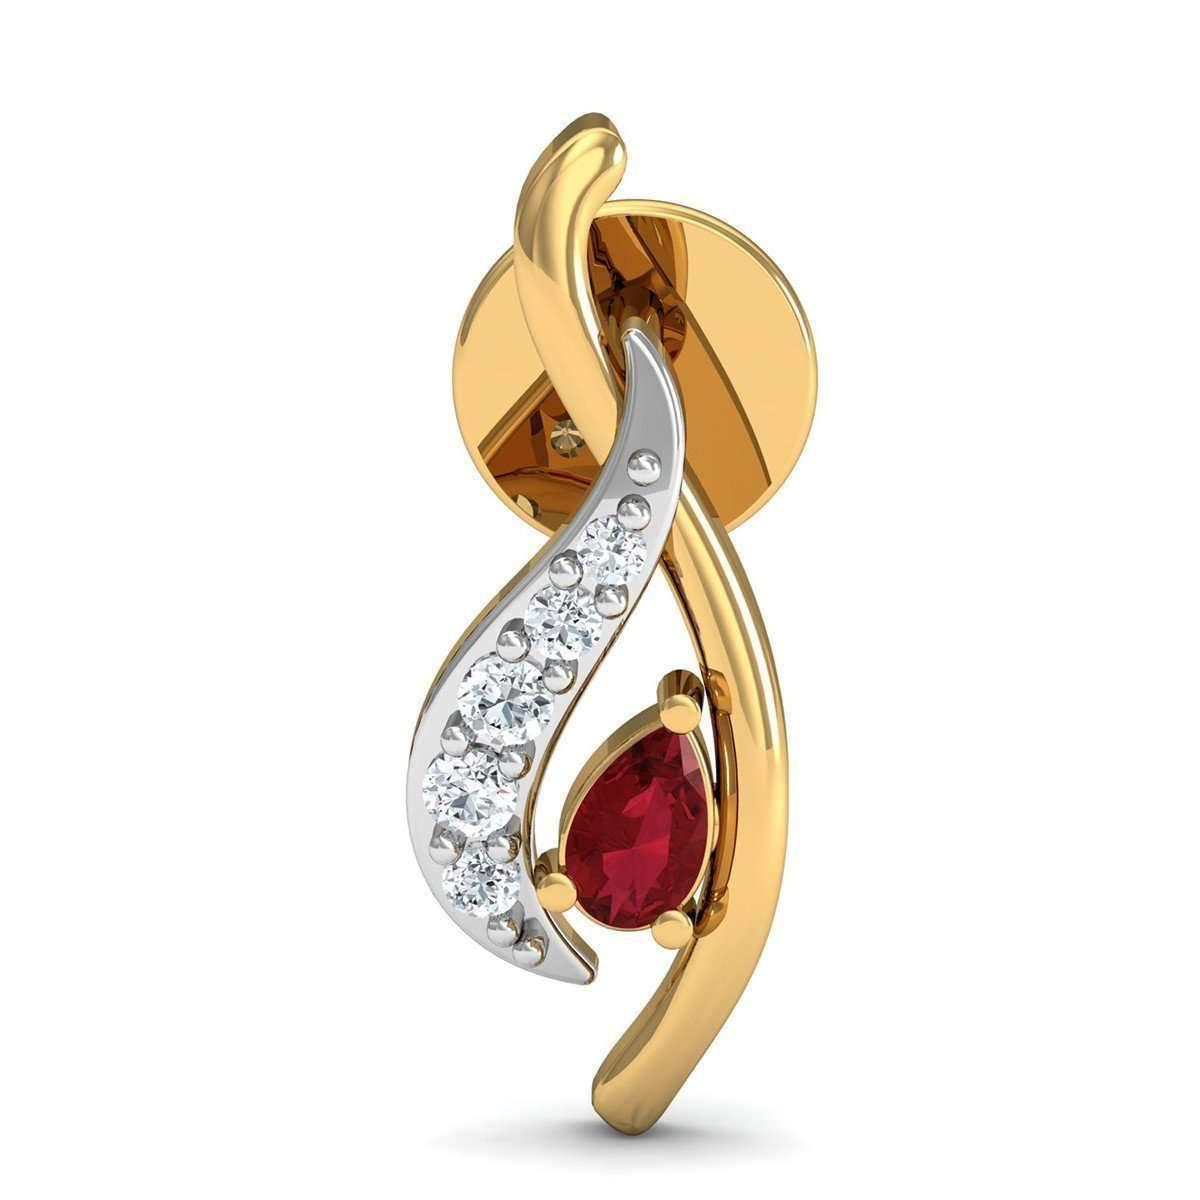 Diamoire Jewels Nature Inspired 10kt Yellow Gold and Pear Shaped Ruby Earrings with Premium Diamonds eBMBiIDfD